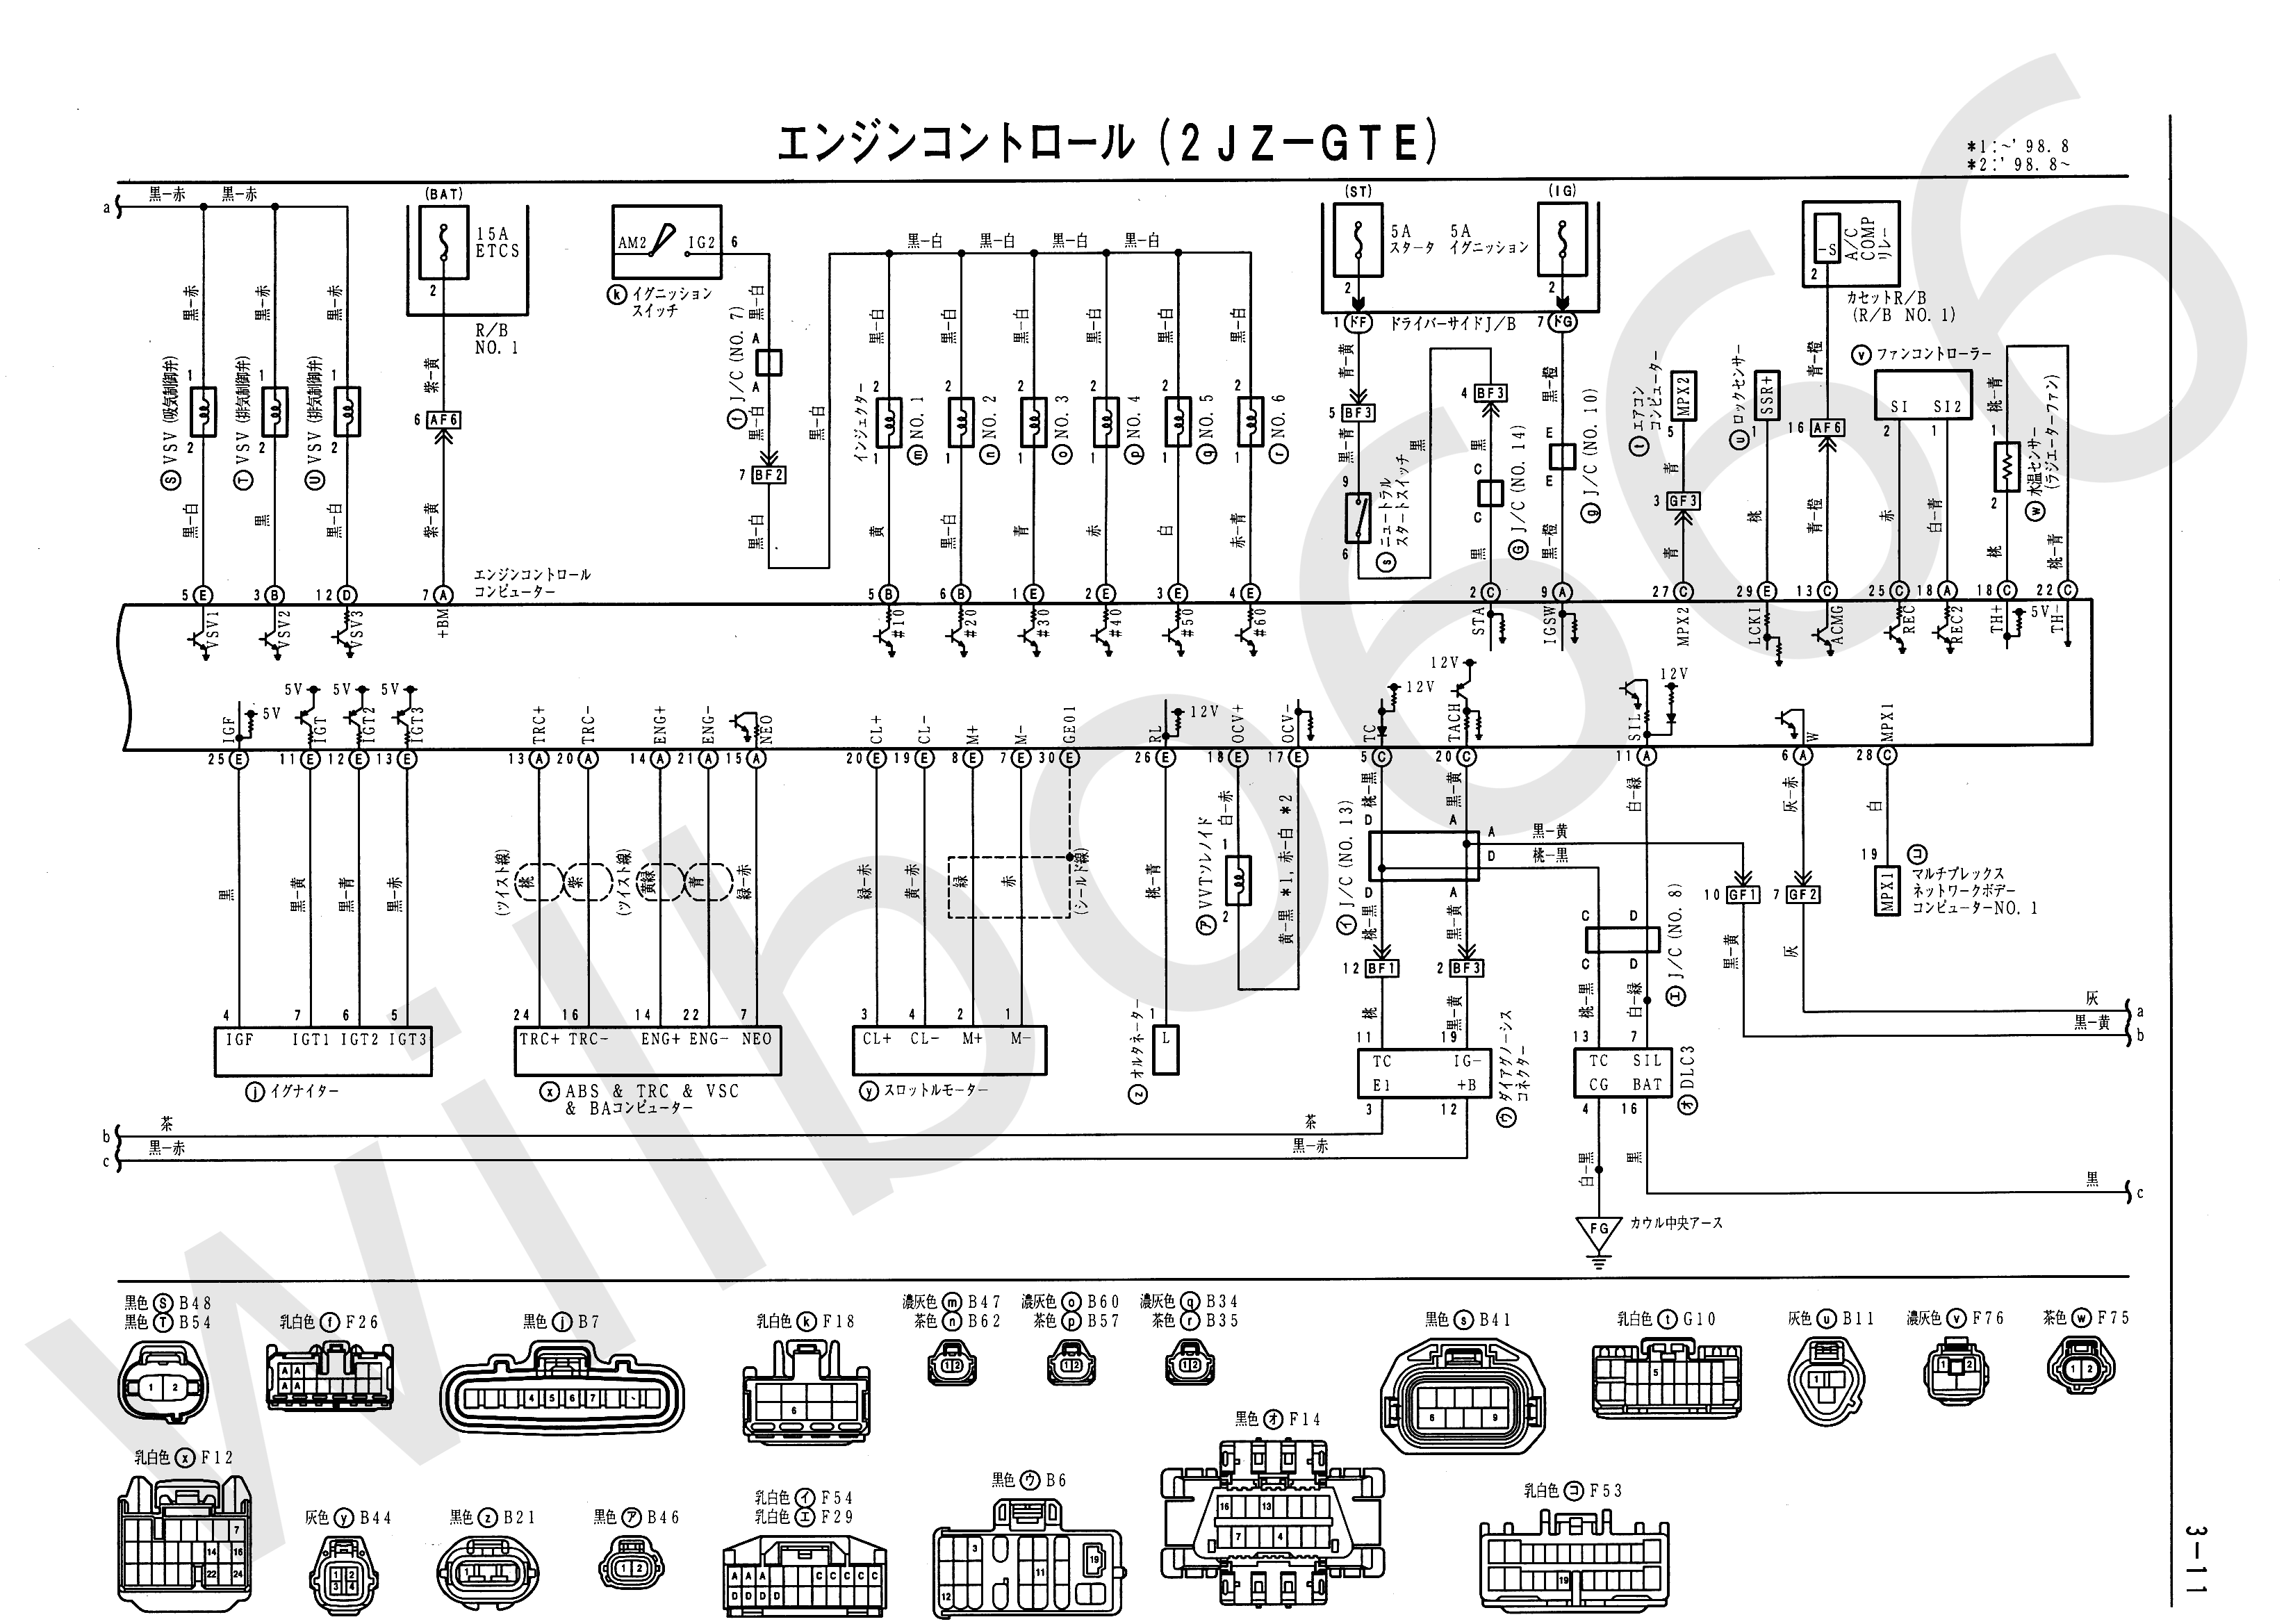 wilbo666 / 2JZ-GTE VVTi JZS161 Aristo Engine Wiring on toyota camry transmission parts diagram, gm oxygen sensor diagram, auto parts wiring diagram, toyota 02 sensor pinout, mazda 6 oxygen sensor diagram, honda oxygen sensor diagram,